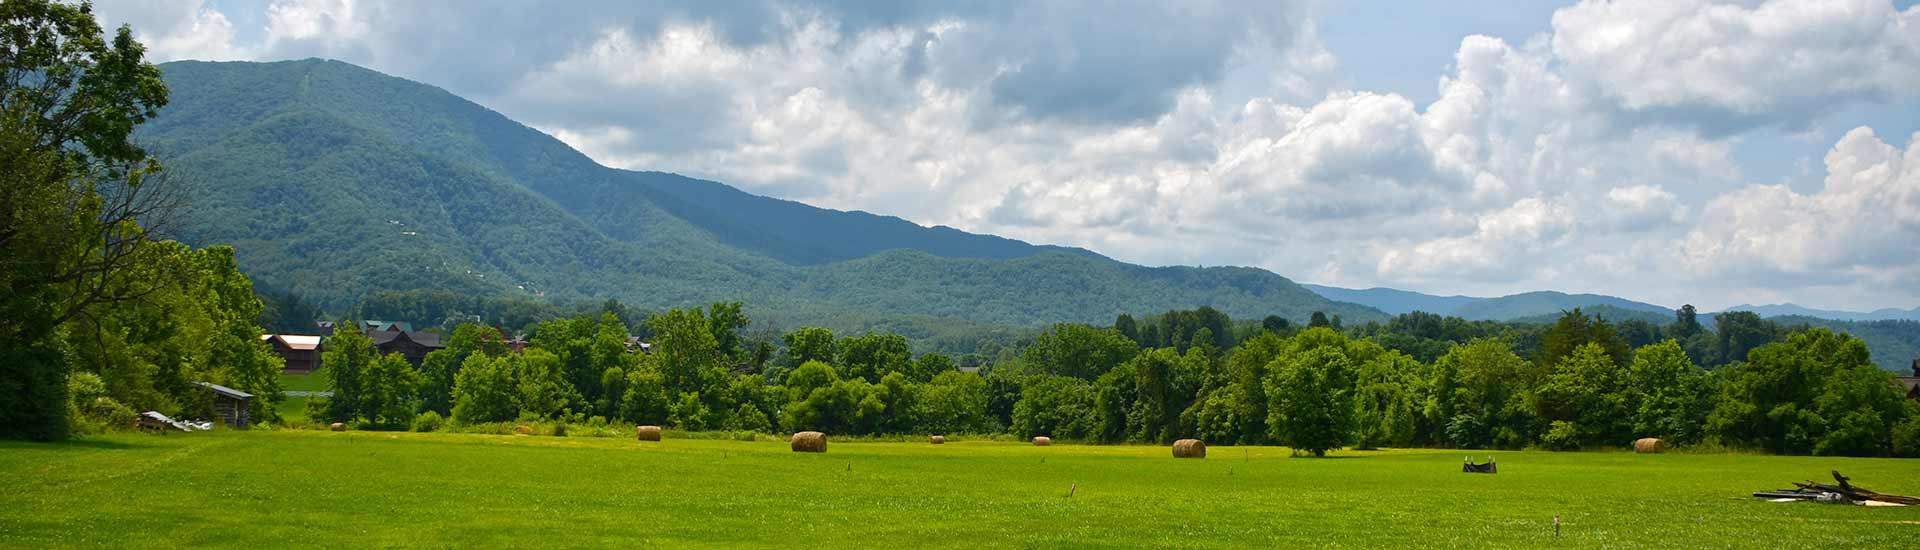 Summertime view of Smoky Mountains behind green pasture dotted with hay bales, Wears Valley, TN